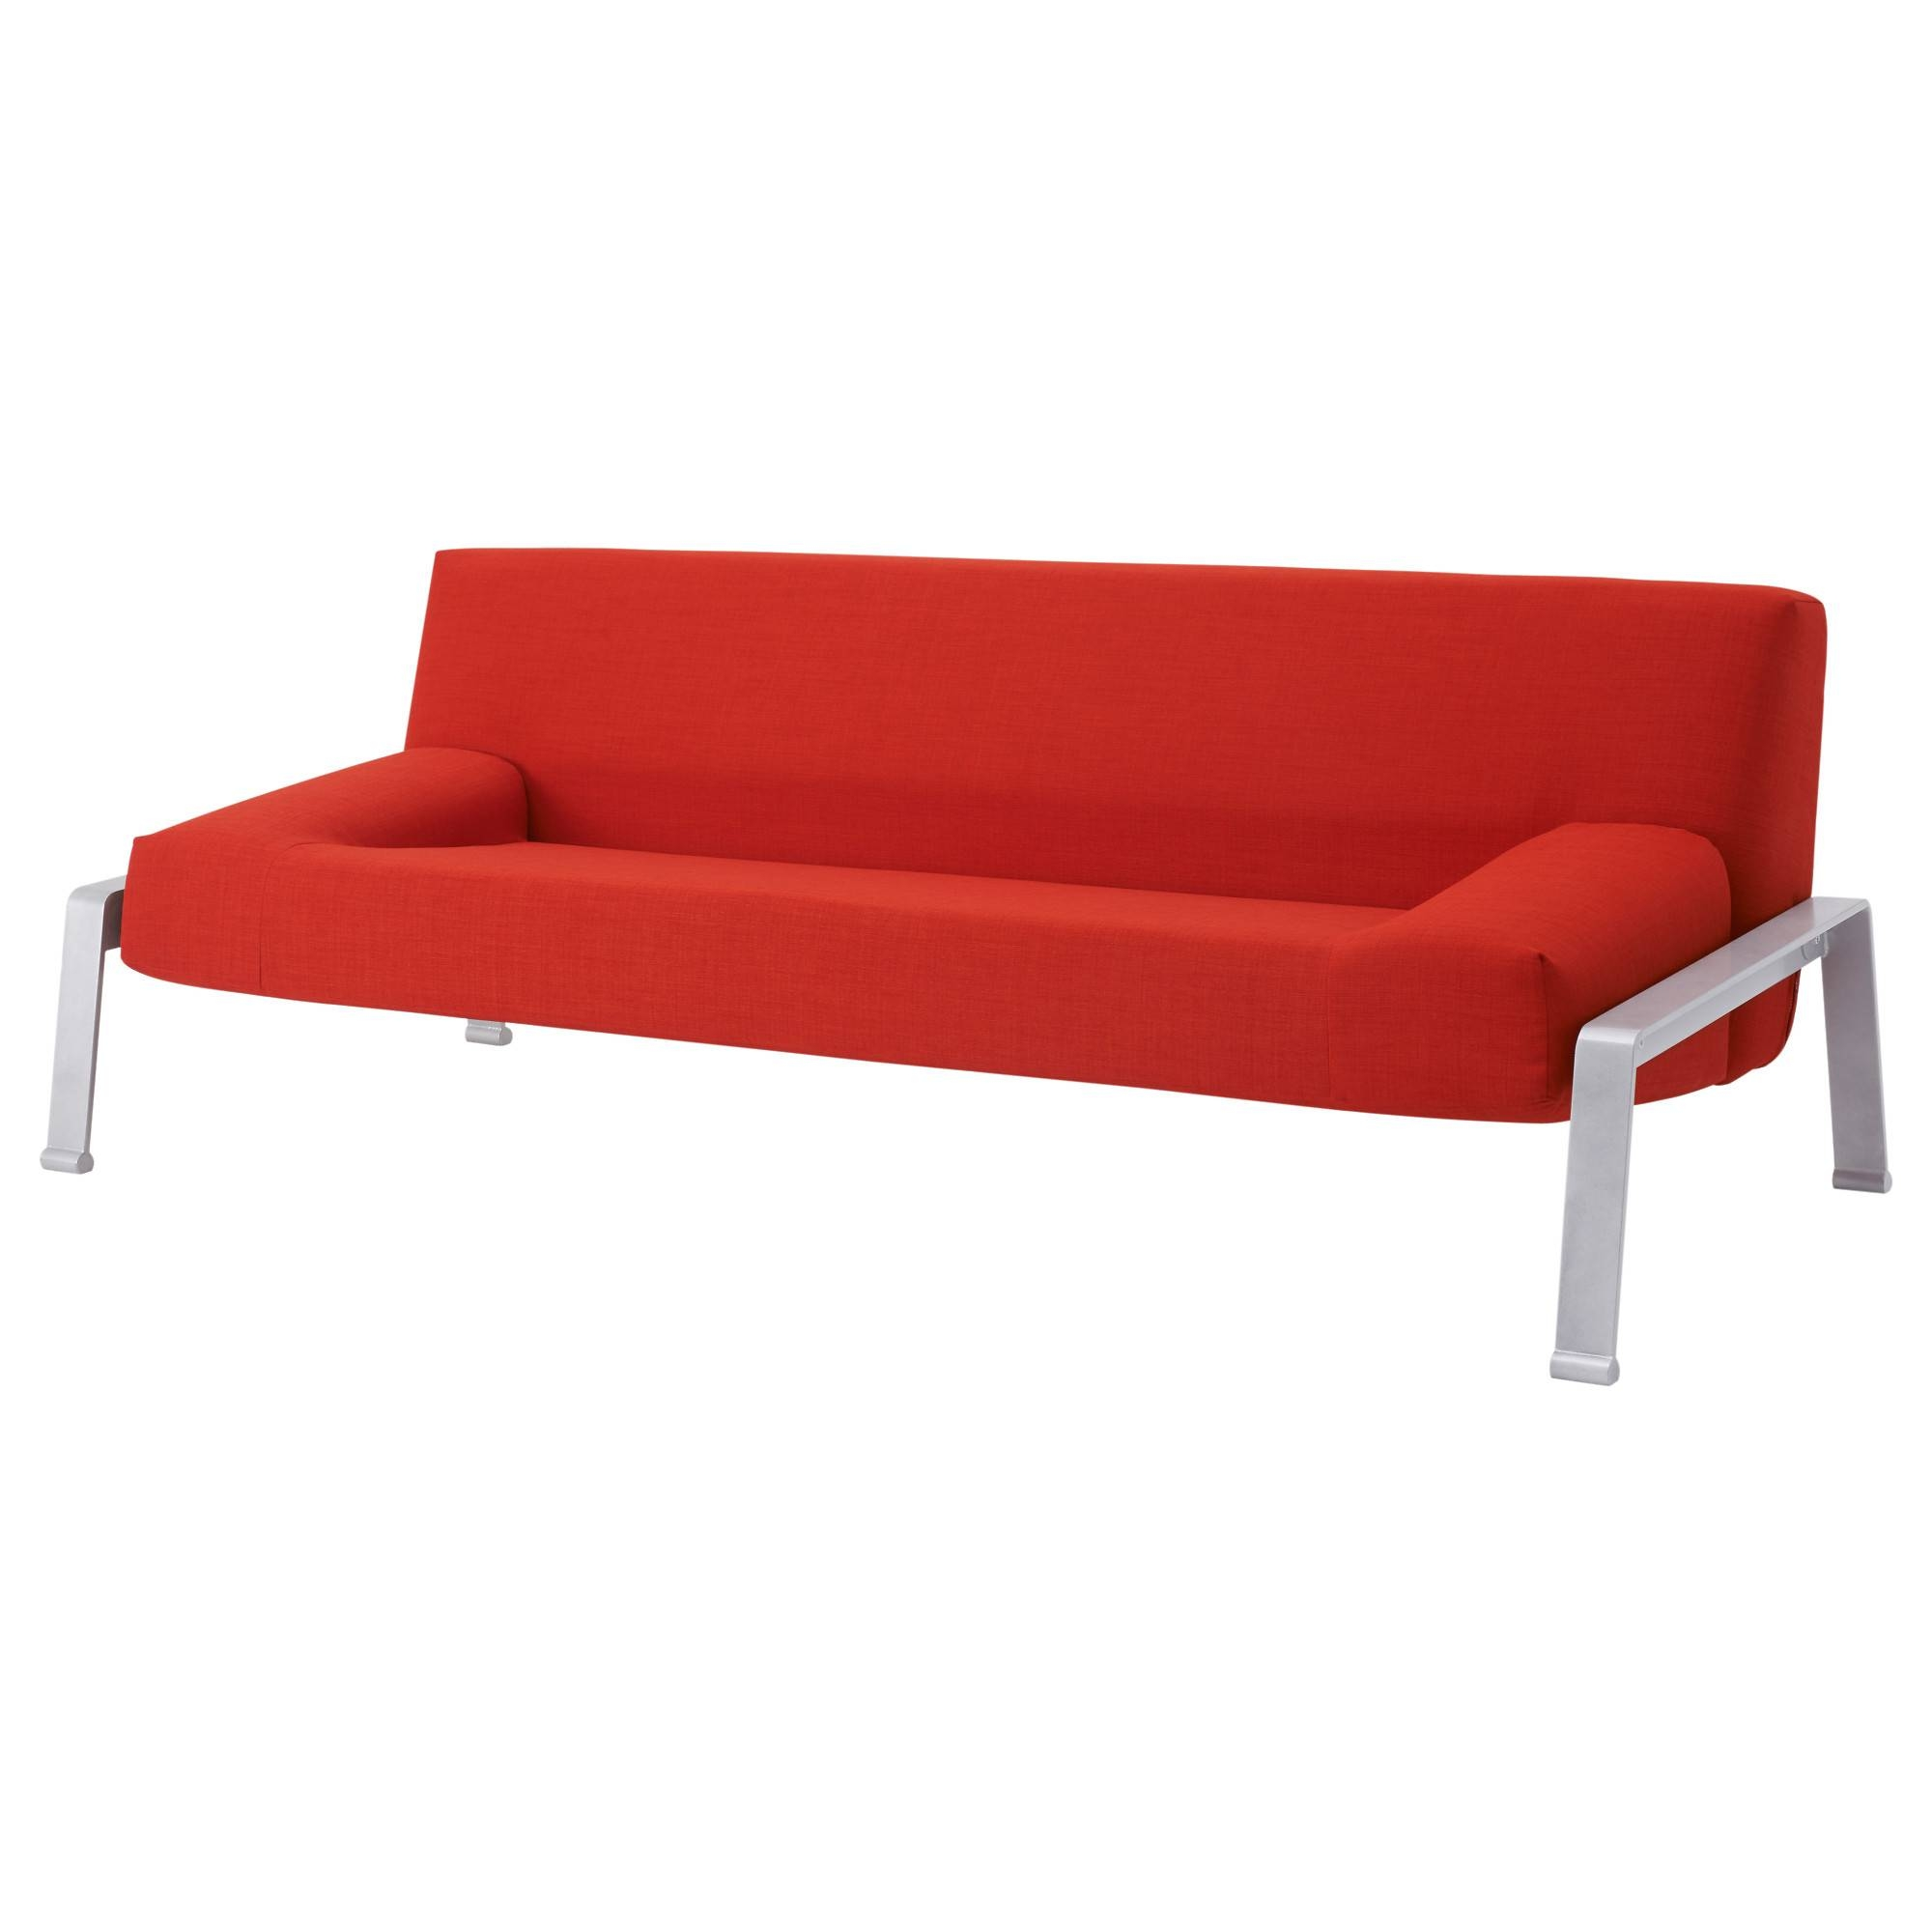 Sleeper-Sofas & Chair Beds - Ikea for Twin Sofa Chairs (Image 12 of 30)